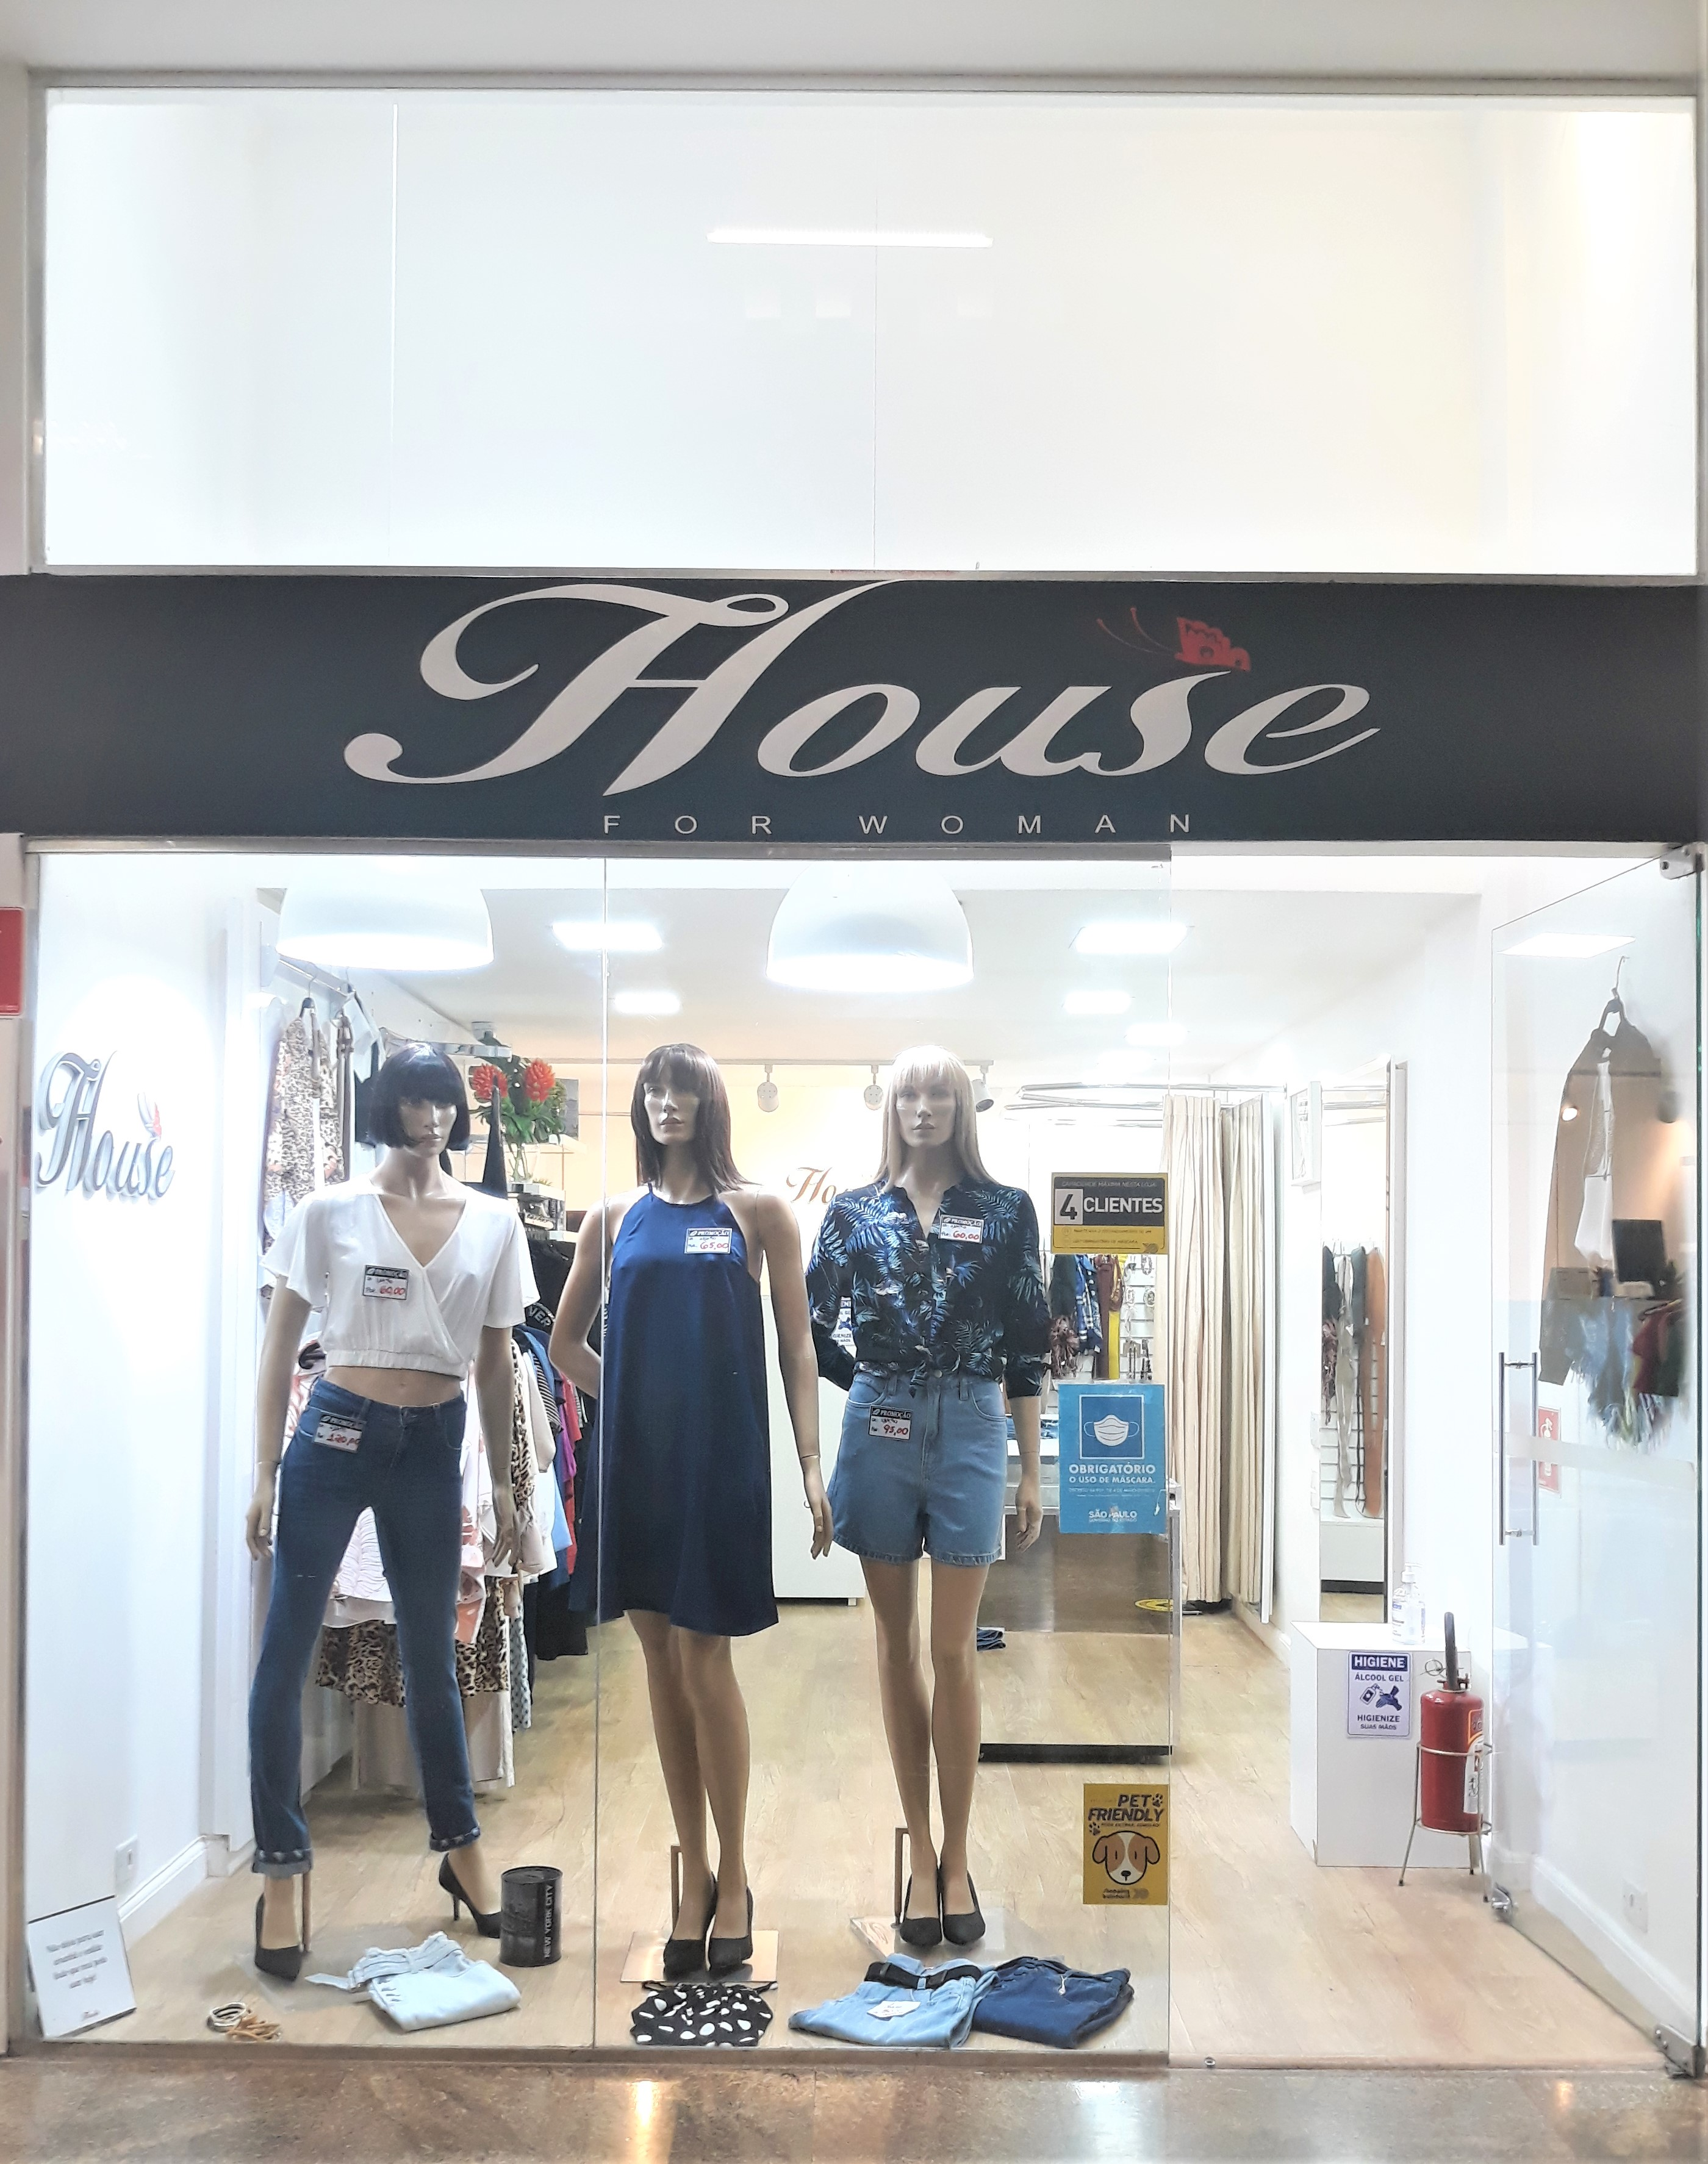 HOUSE FOR WOMAN